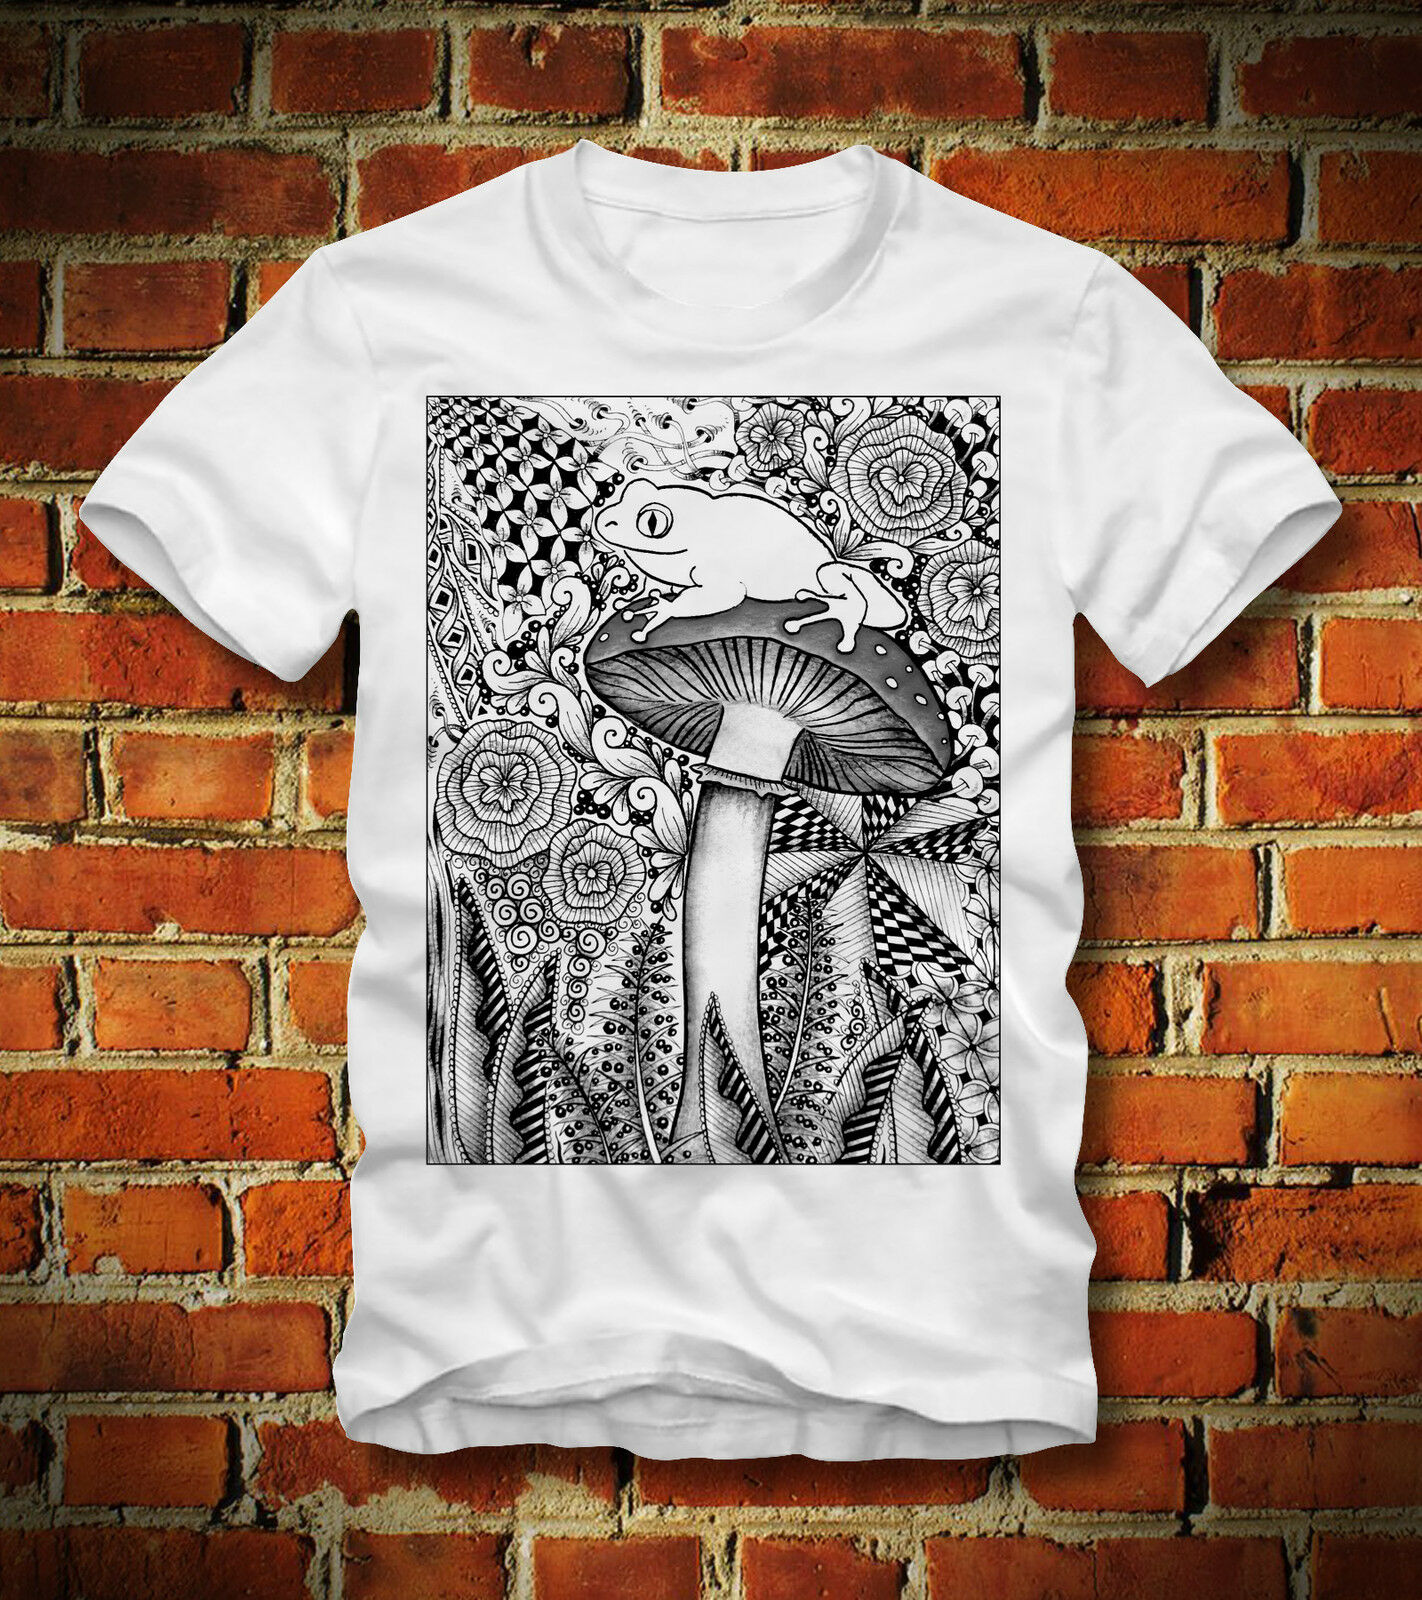 T SHIRT MAGIC MUSHROOM PSYCHEDELIC LSD PSYCHOACTIVE FROG TOAD MDMACool Casual Pride T Shirt Men Unisex Fashion Tshirt